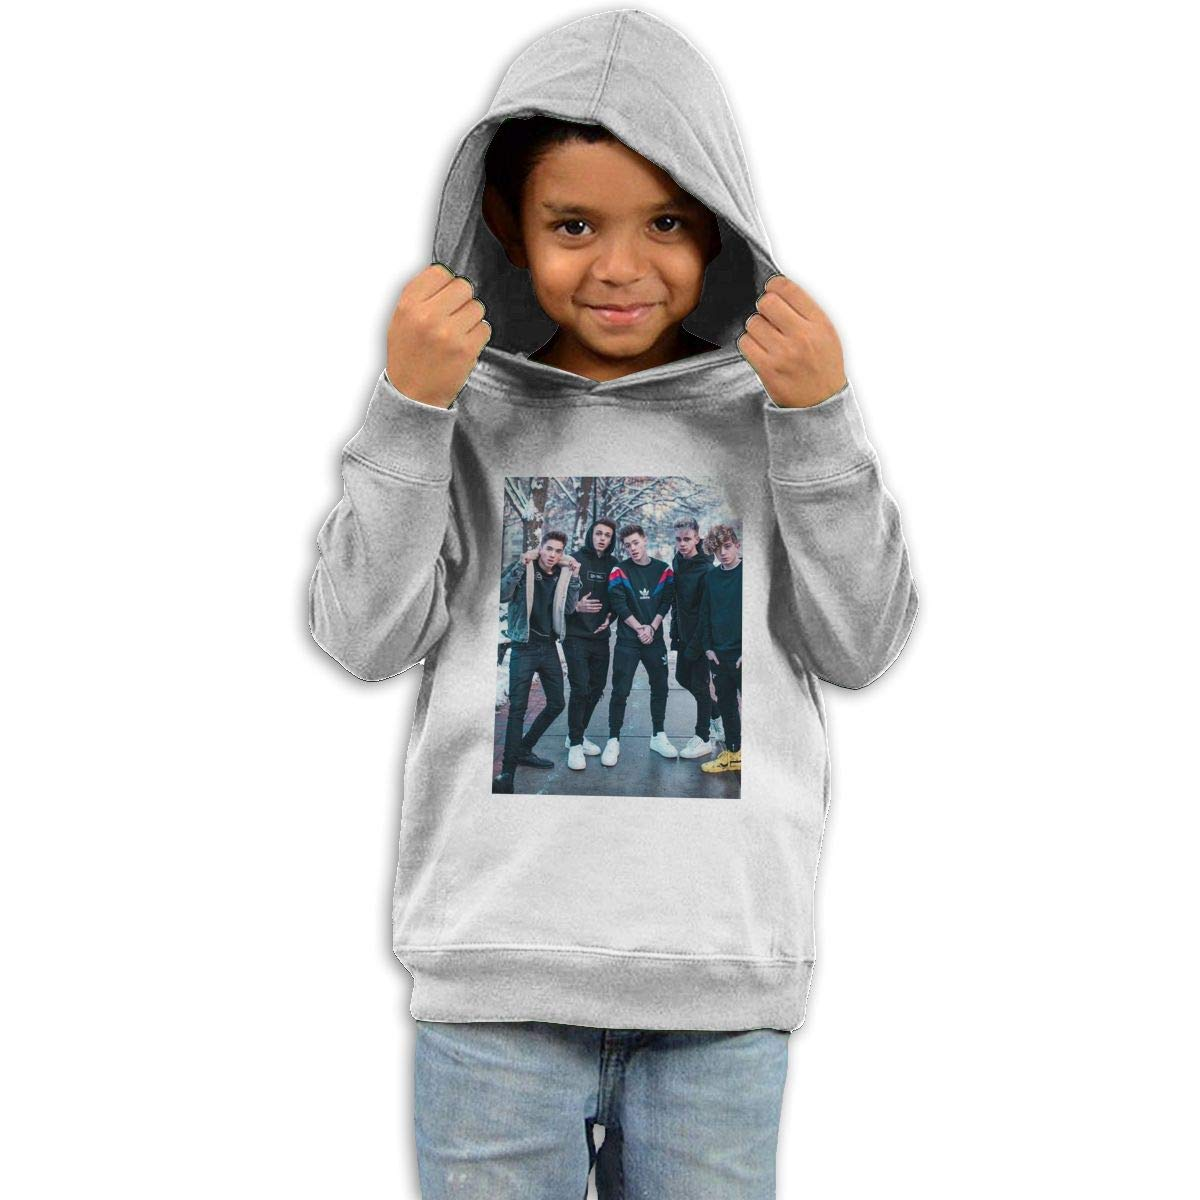 Stacy J. Payne Boys Why Don't We Merch Particular Hoody39 White